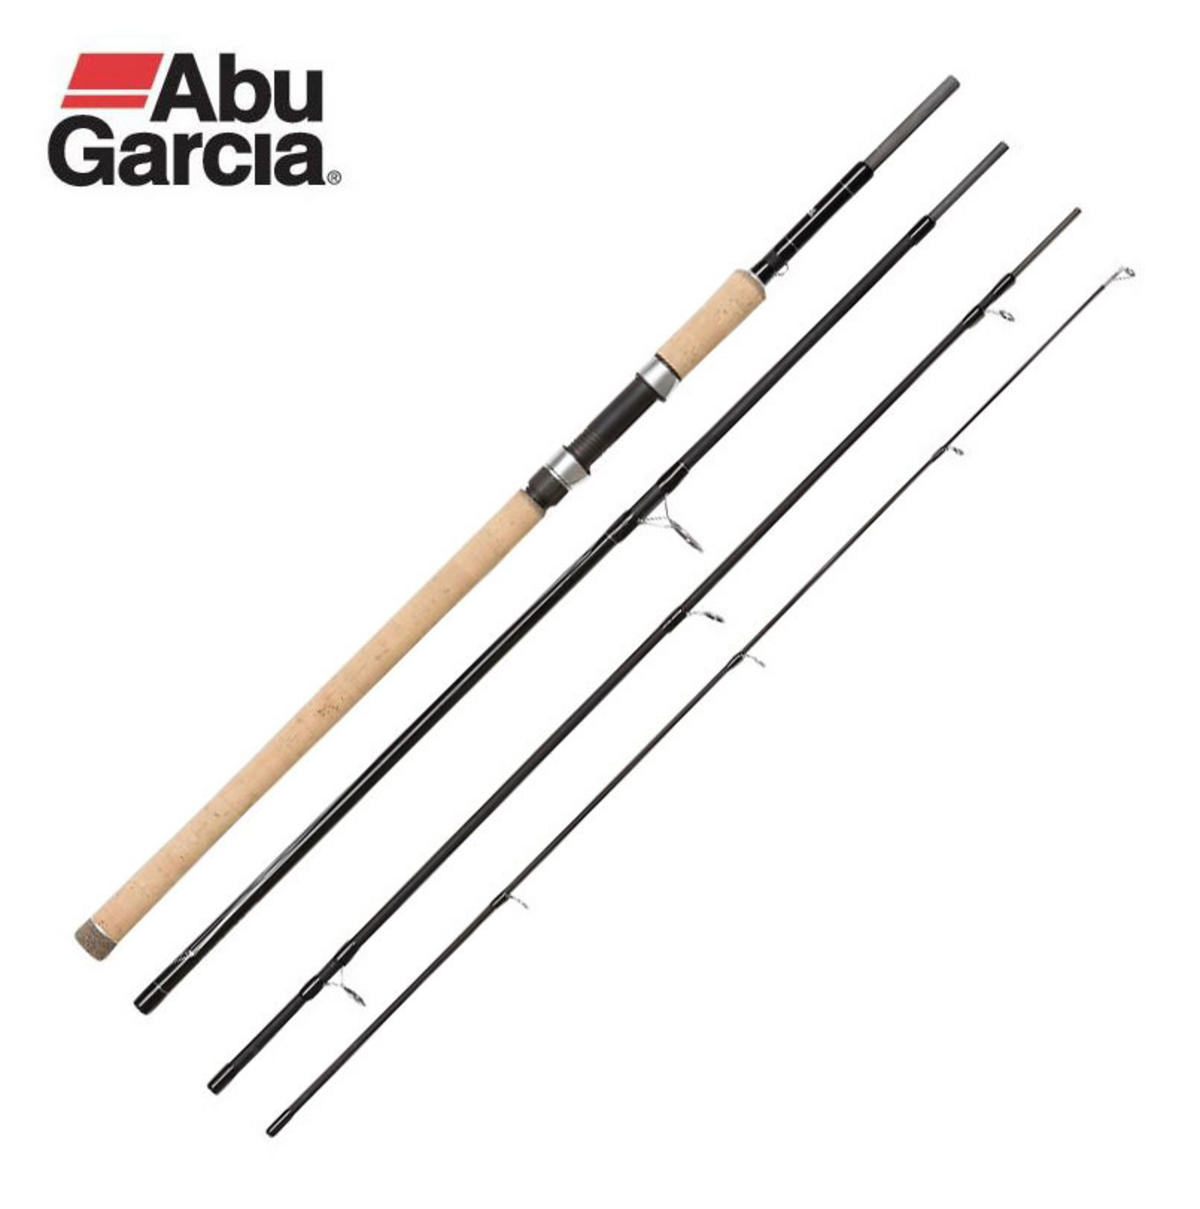 New Abu Garcia Venturi Travel Spinning Rod 9ft ML 10-35g 4pc 1407162